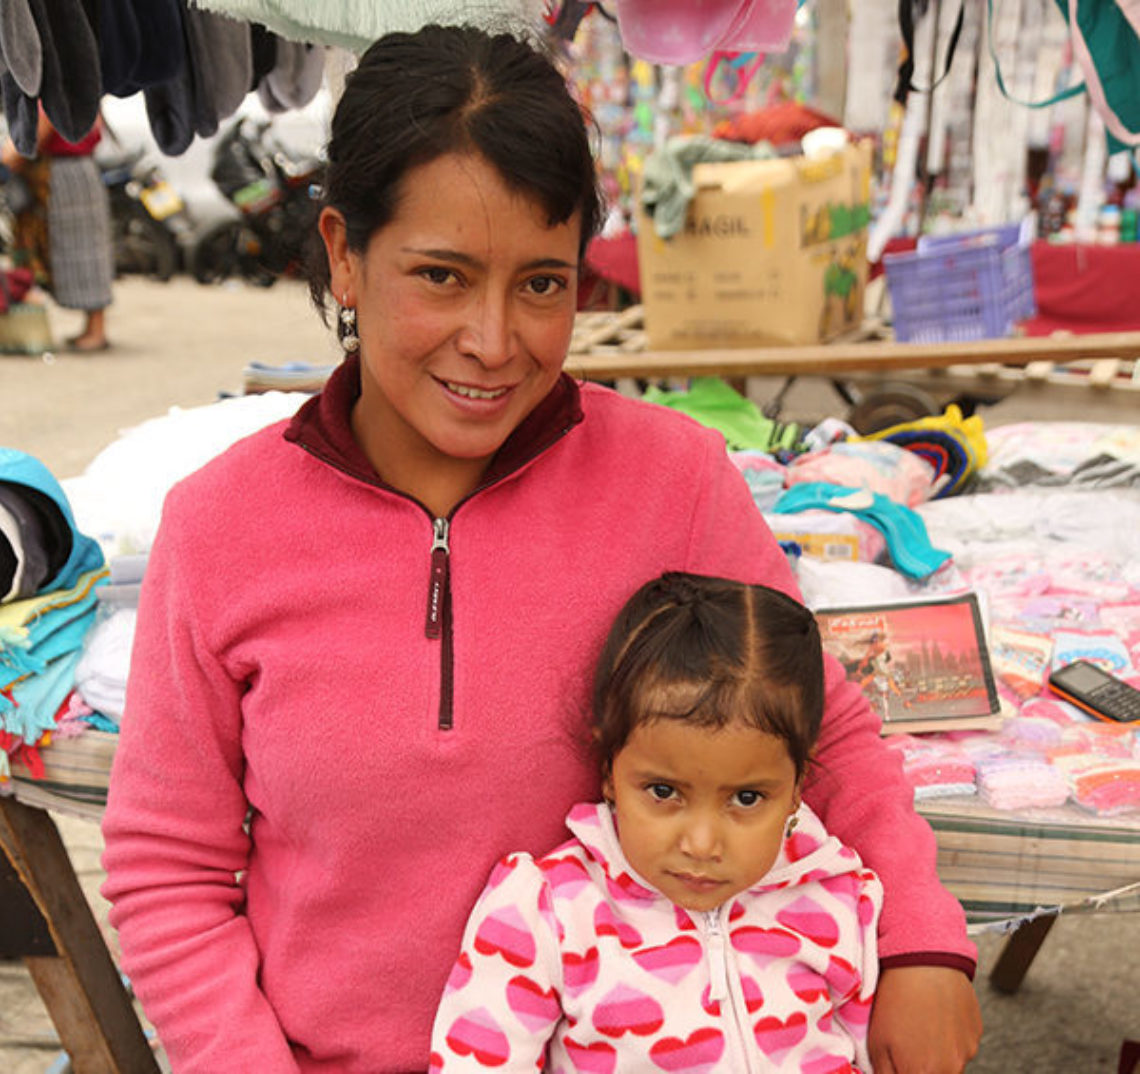 Teresa, a RICHES group participant from El Salvador, and her daughter. Teresa is wearing a pink sweater, and her daughter is wearing a white sweater with pink hearts.